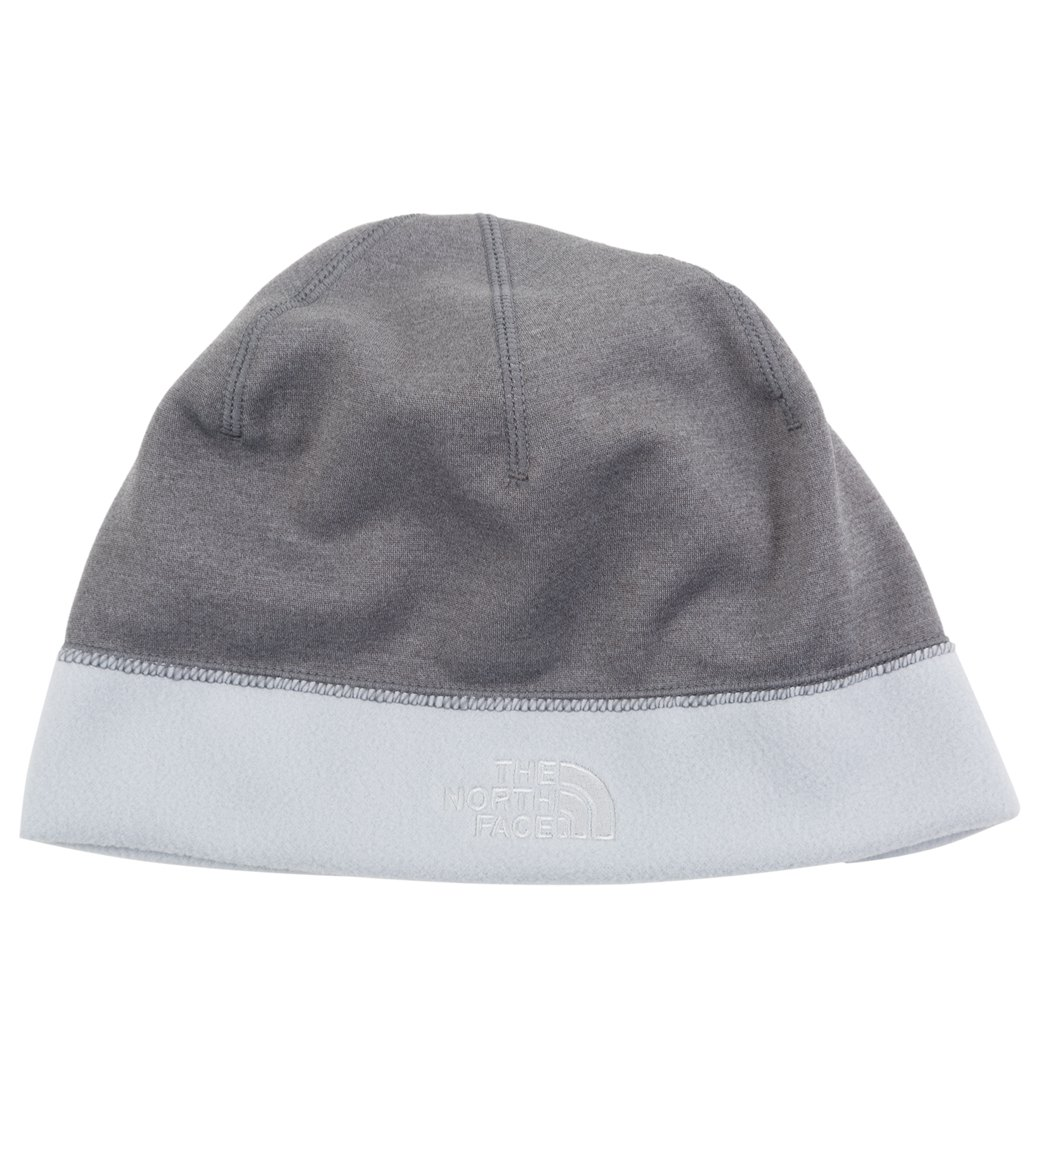 03c8db0223b The North Face Ascent Beanie at SwimOutlet.com